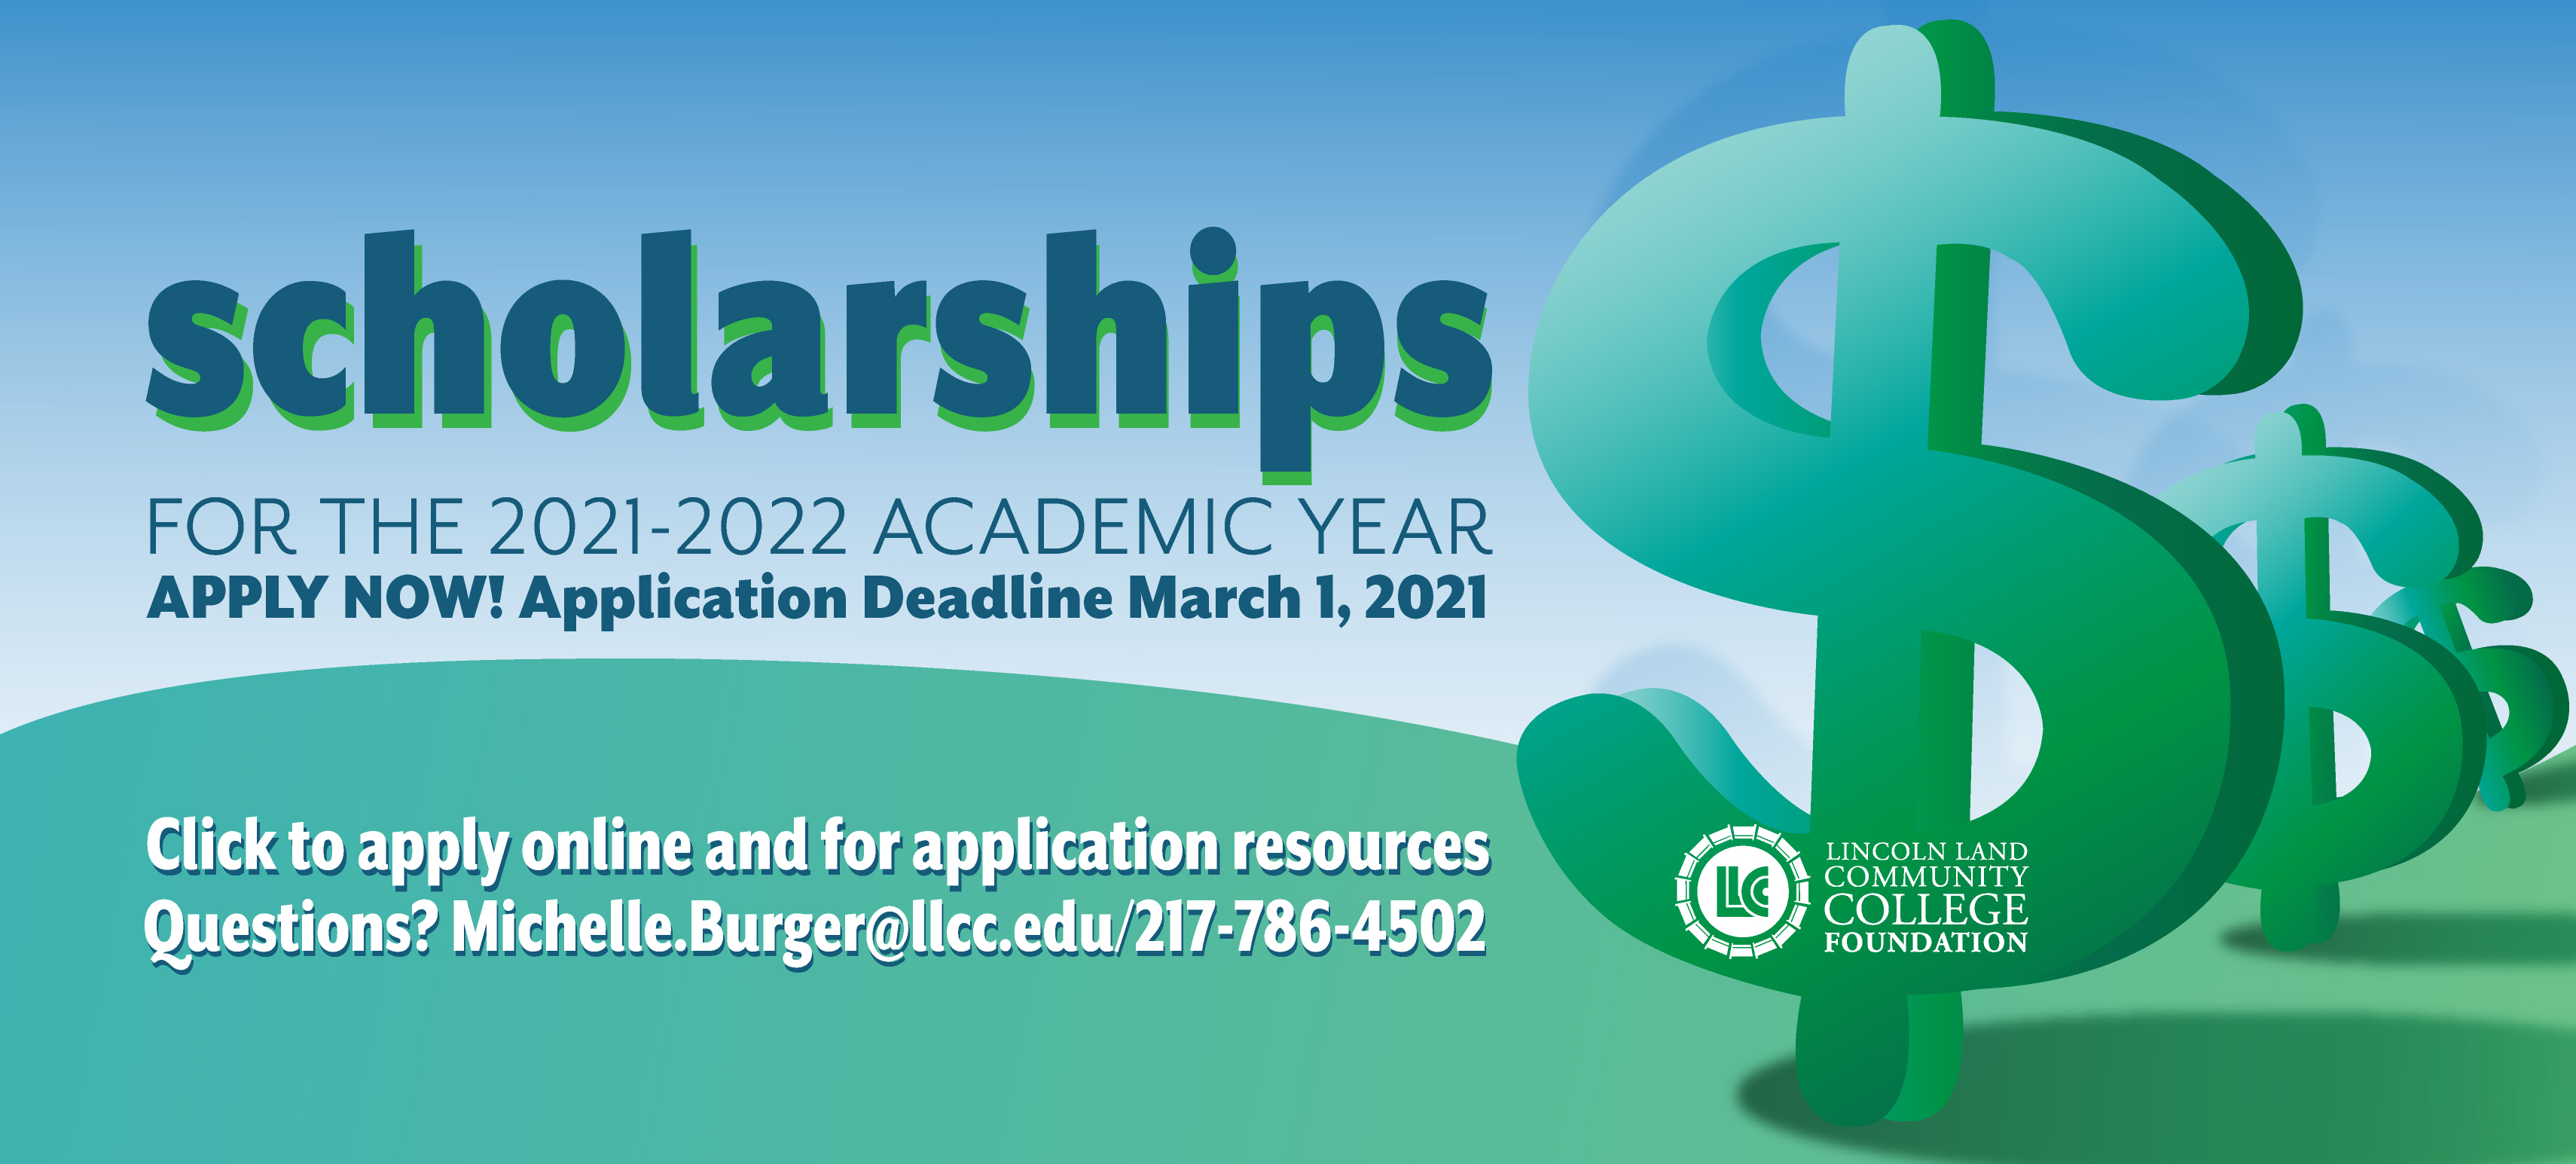 Lincoln Land Community College Foundation scholarships for the 2021-2022 academic year. Apply now! Application Deadline March 1, 2021. Click to apply online and for application resources. Questions? Michelle.Burger@llcc.edu 217-786-4502.